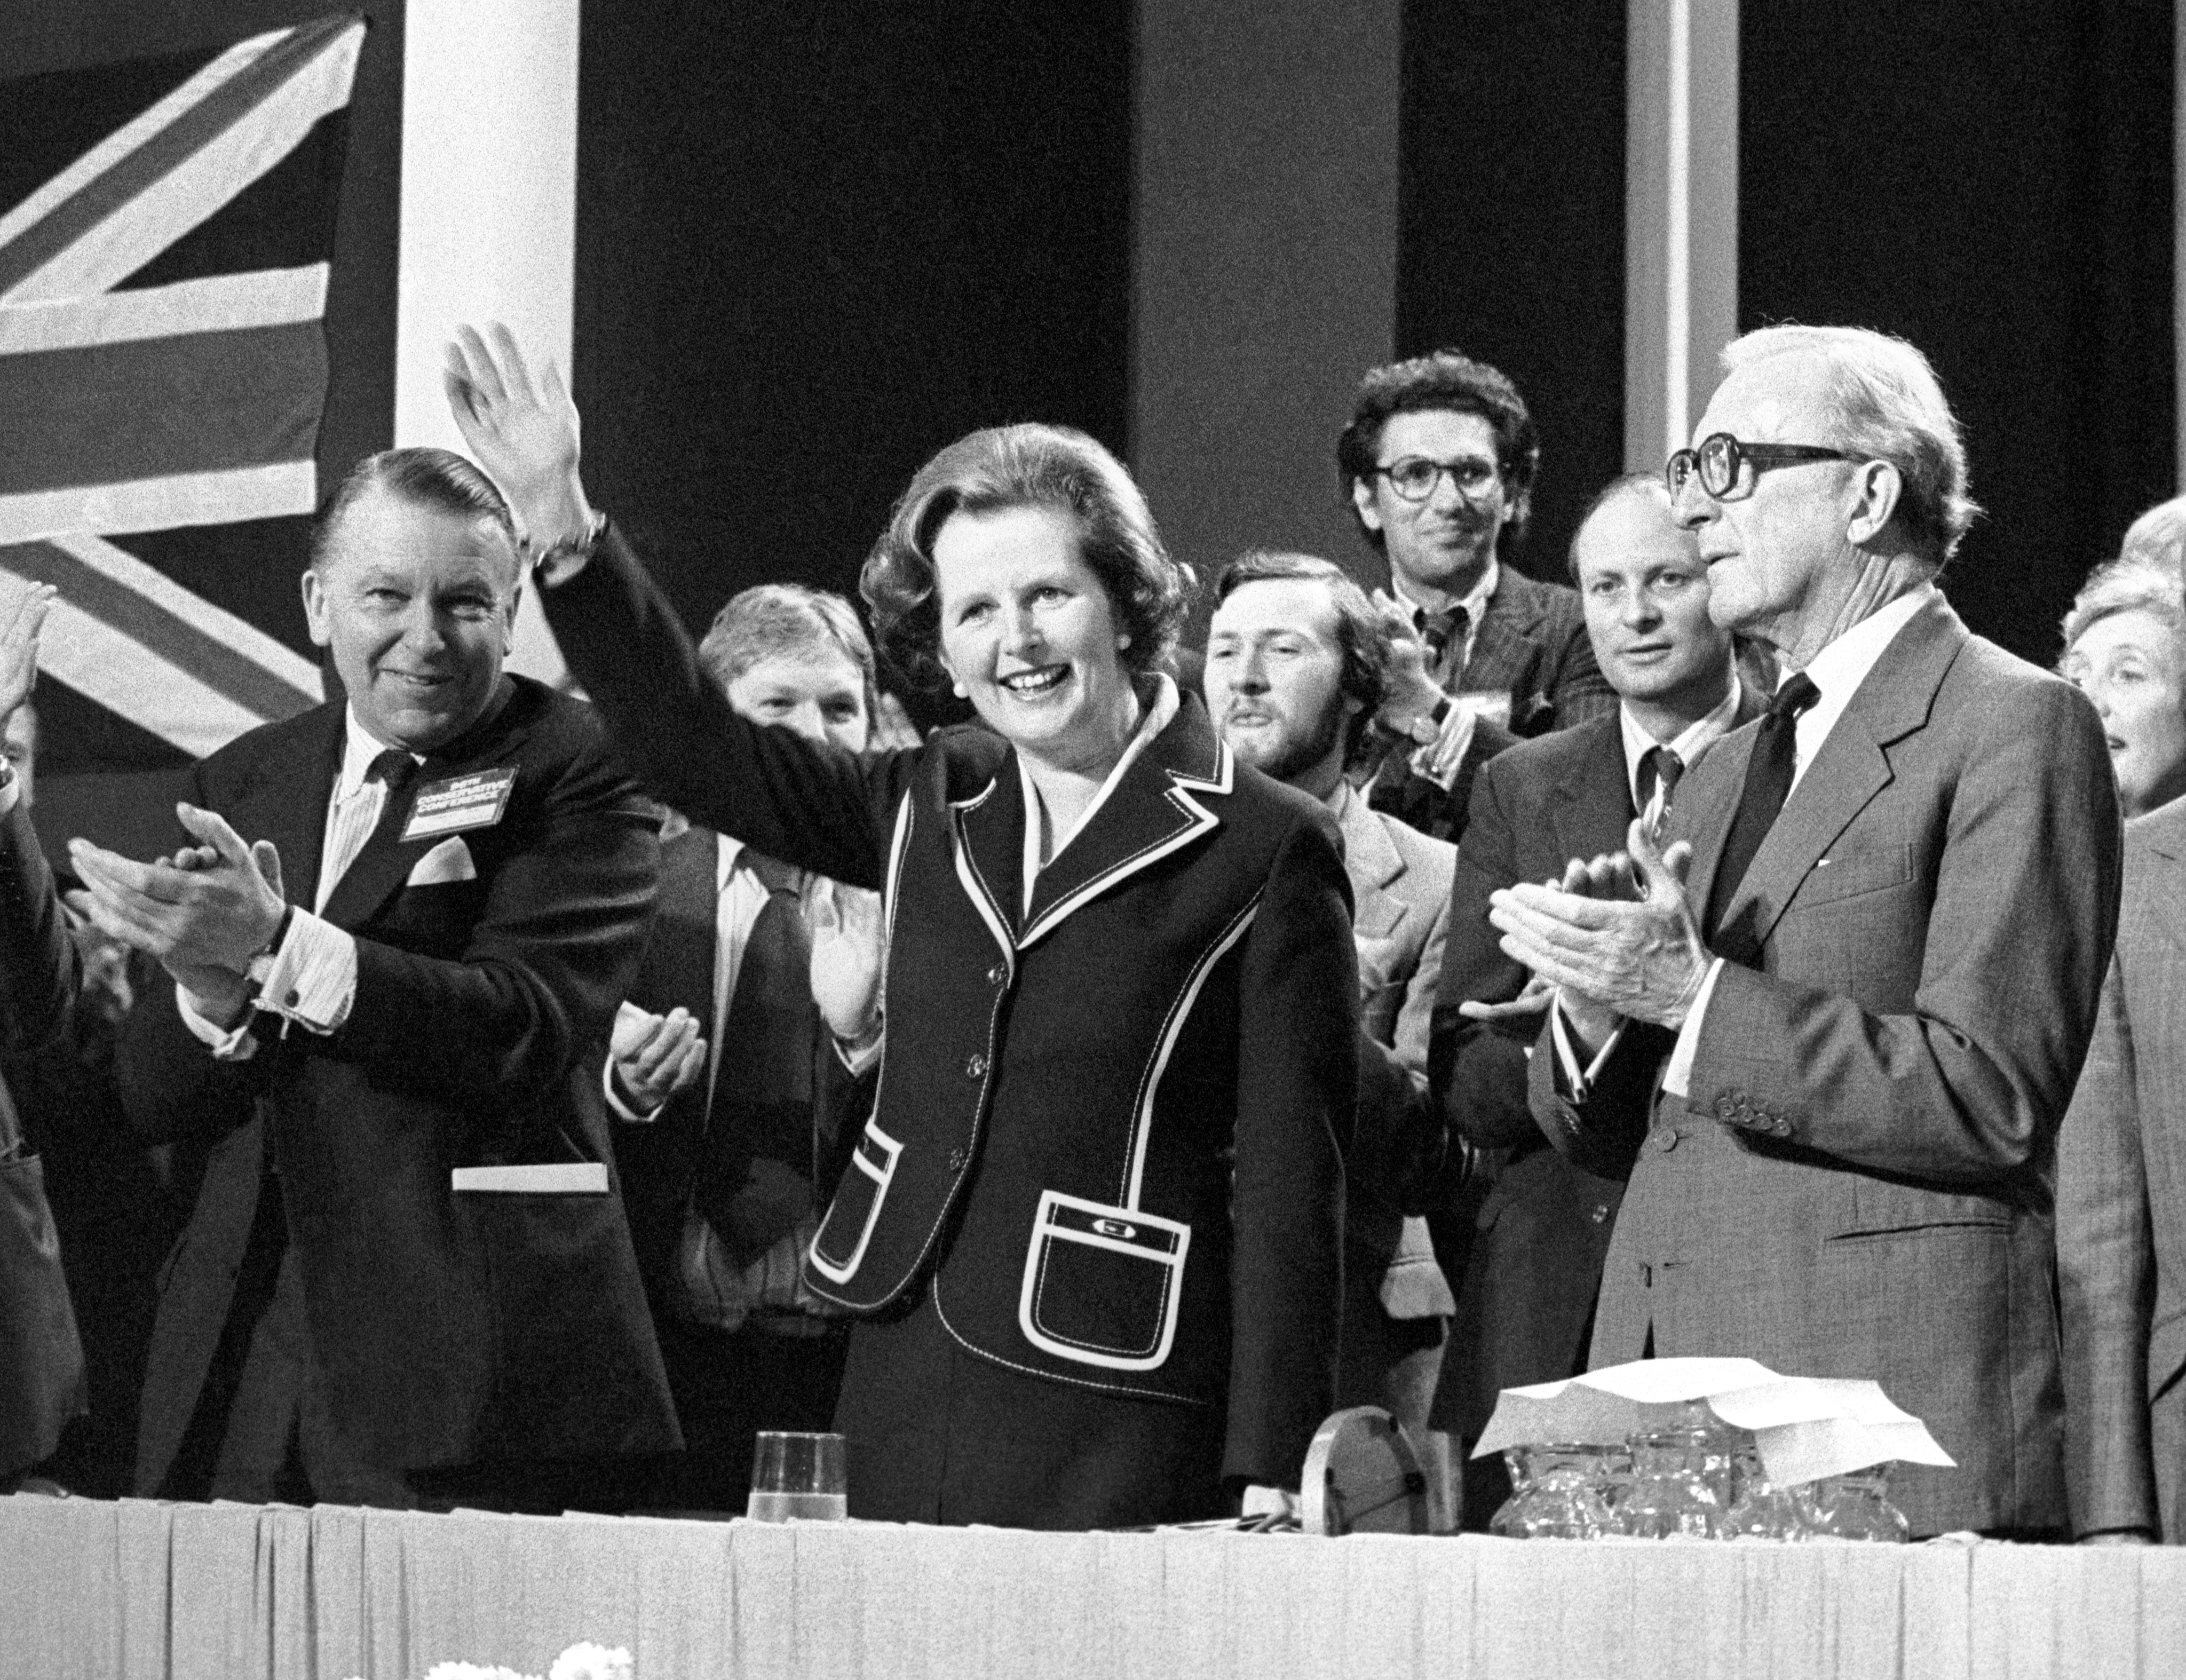 Margaret Thatcher receiving a rapturous reception at the Conservative Party Conference